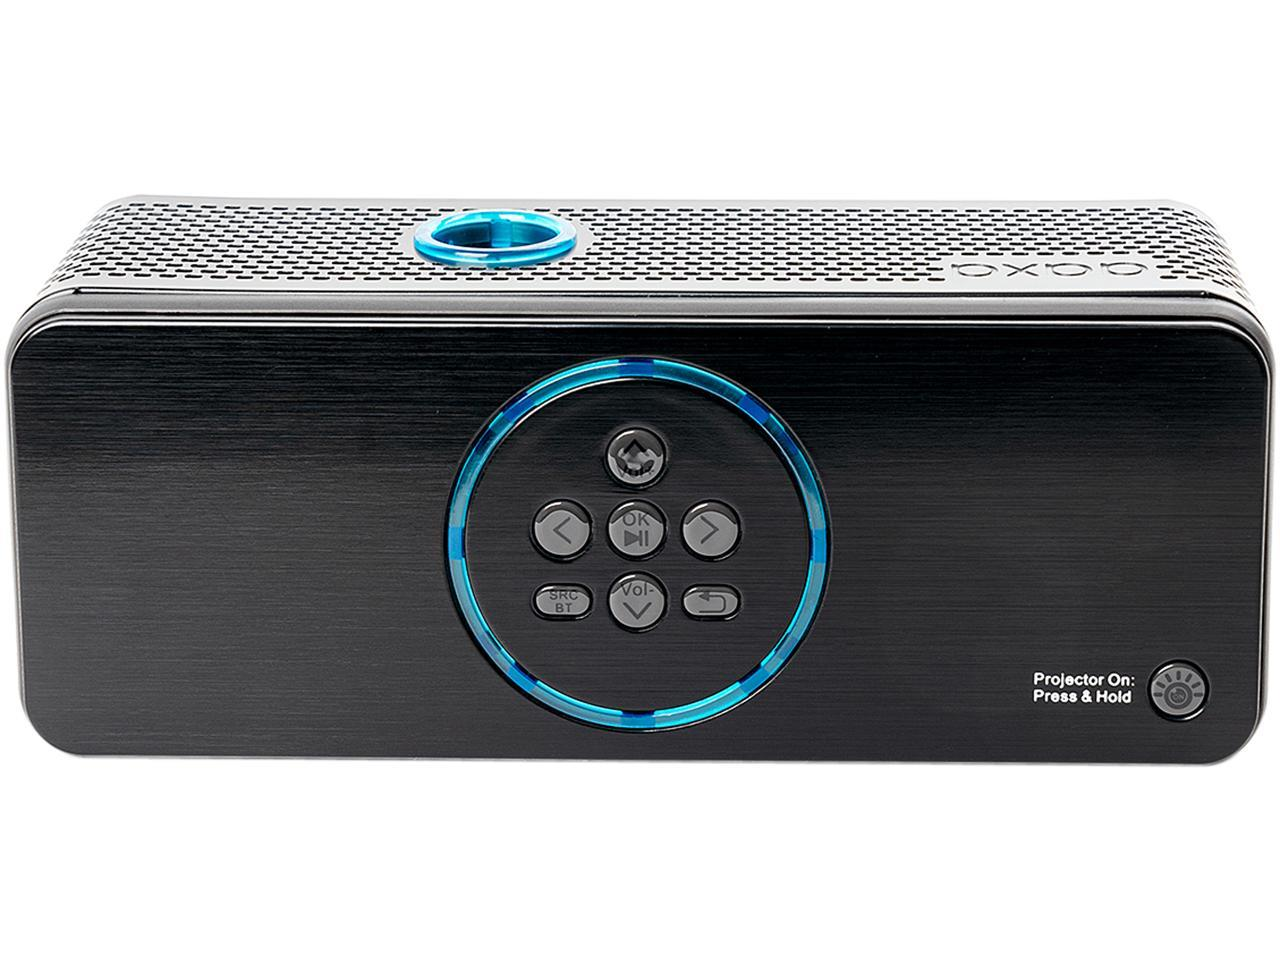 AAXA BP1 Bluetooth Speaker Mini Projector